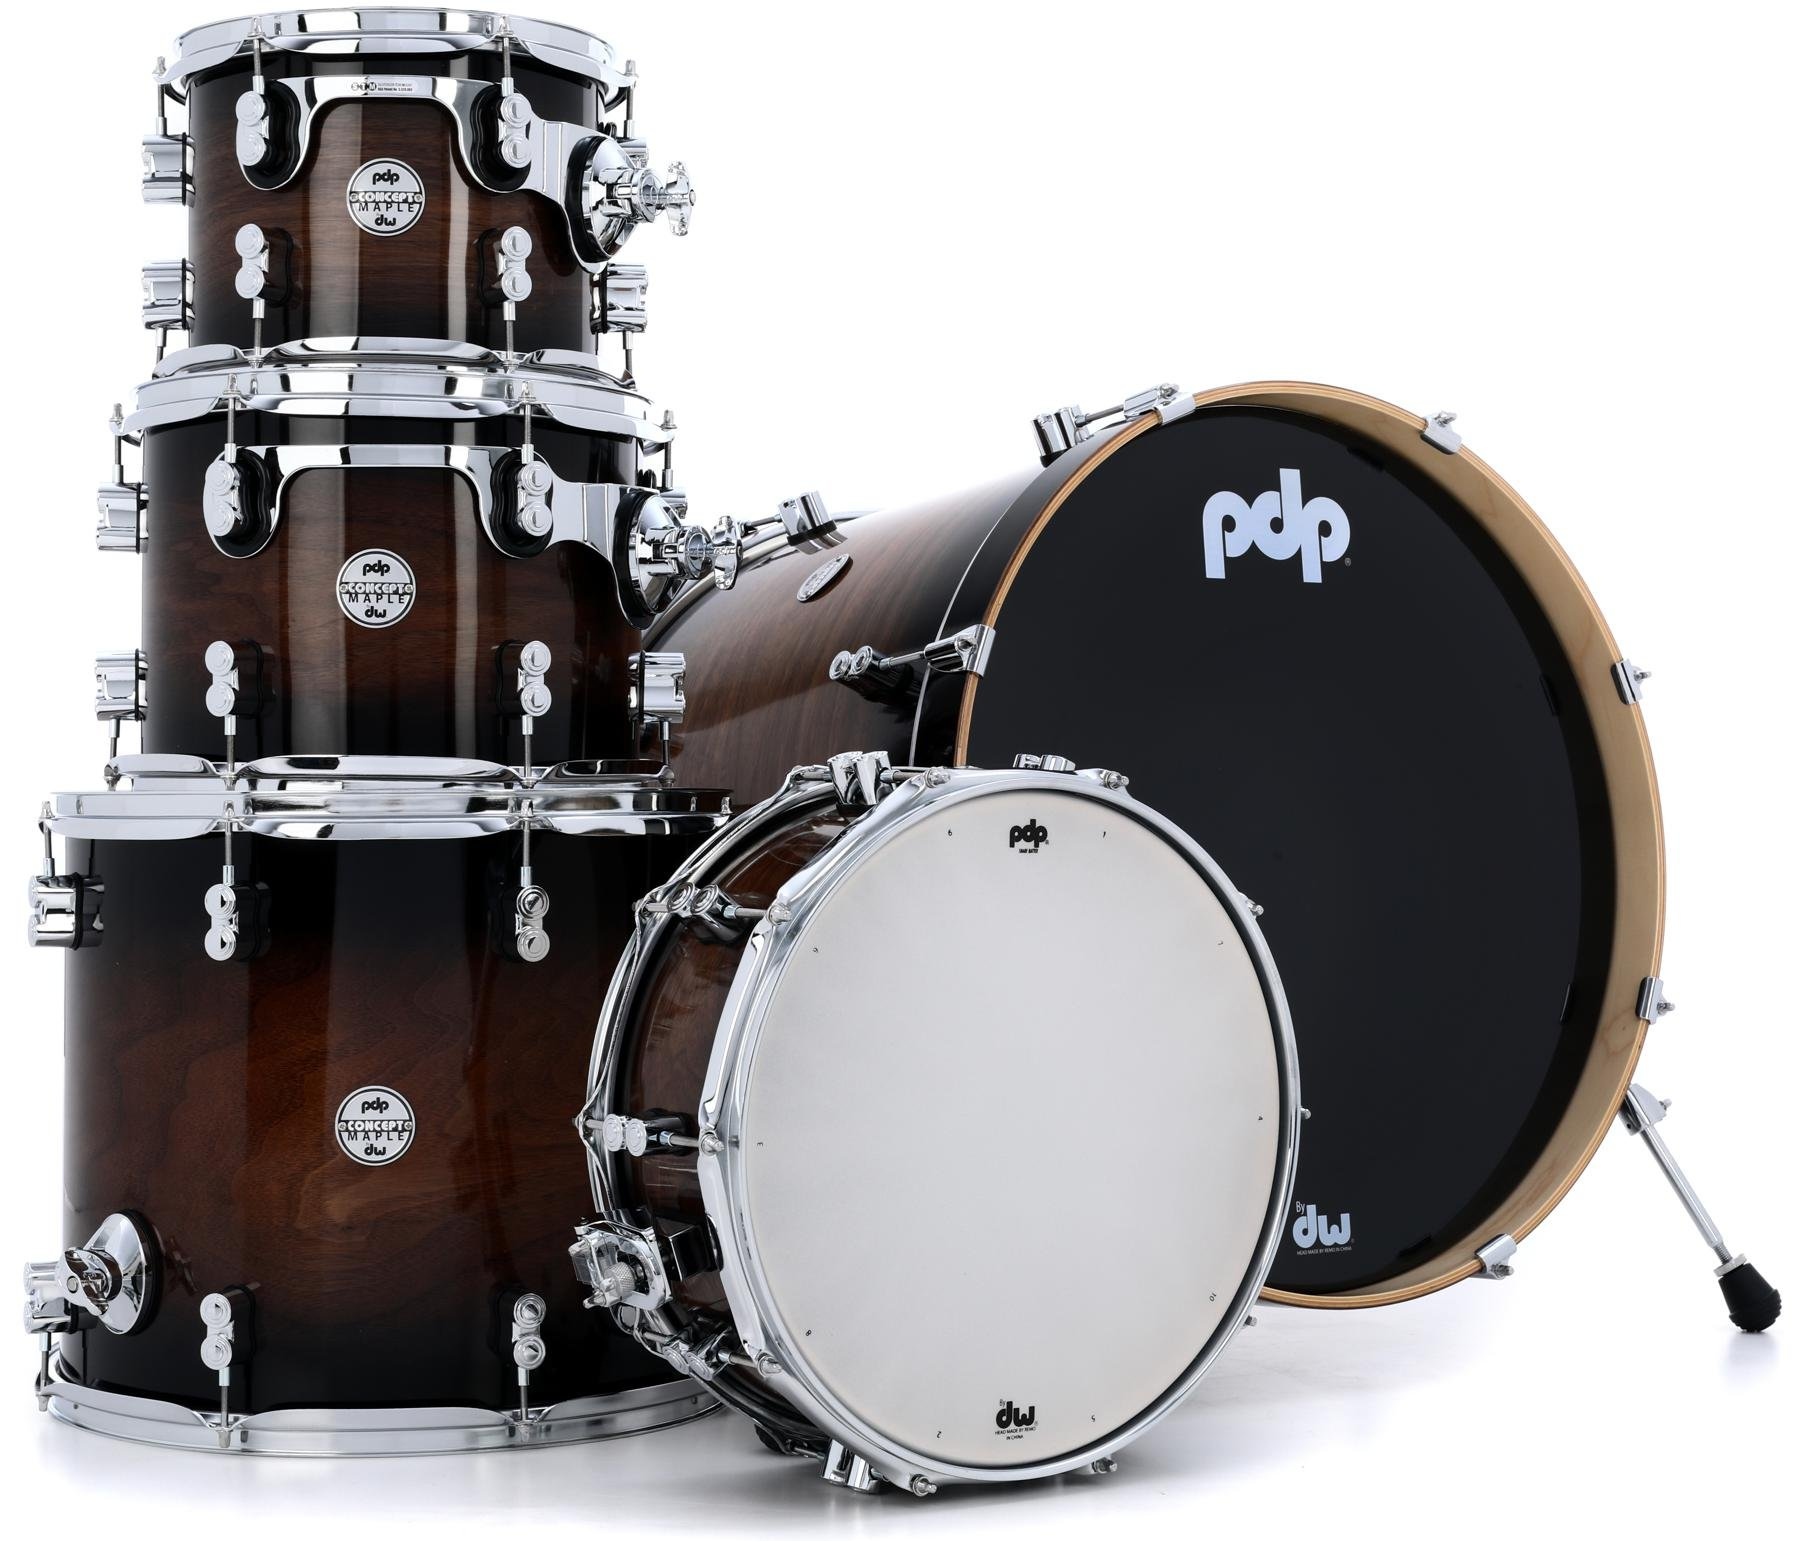 pdp concept maple exotic series 5 shell pack walnut to charcoal burst